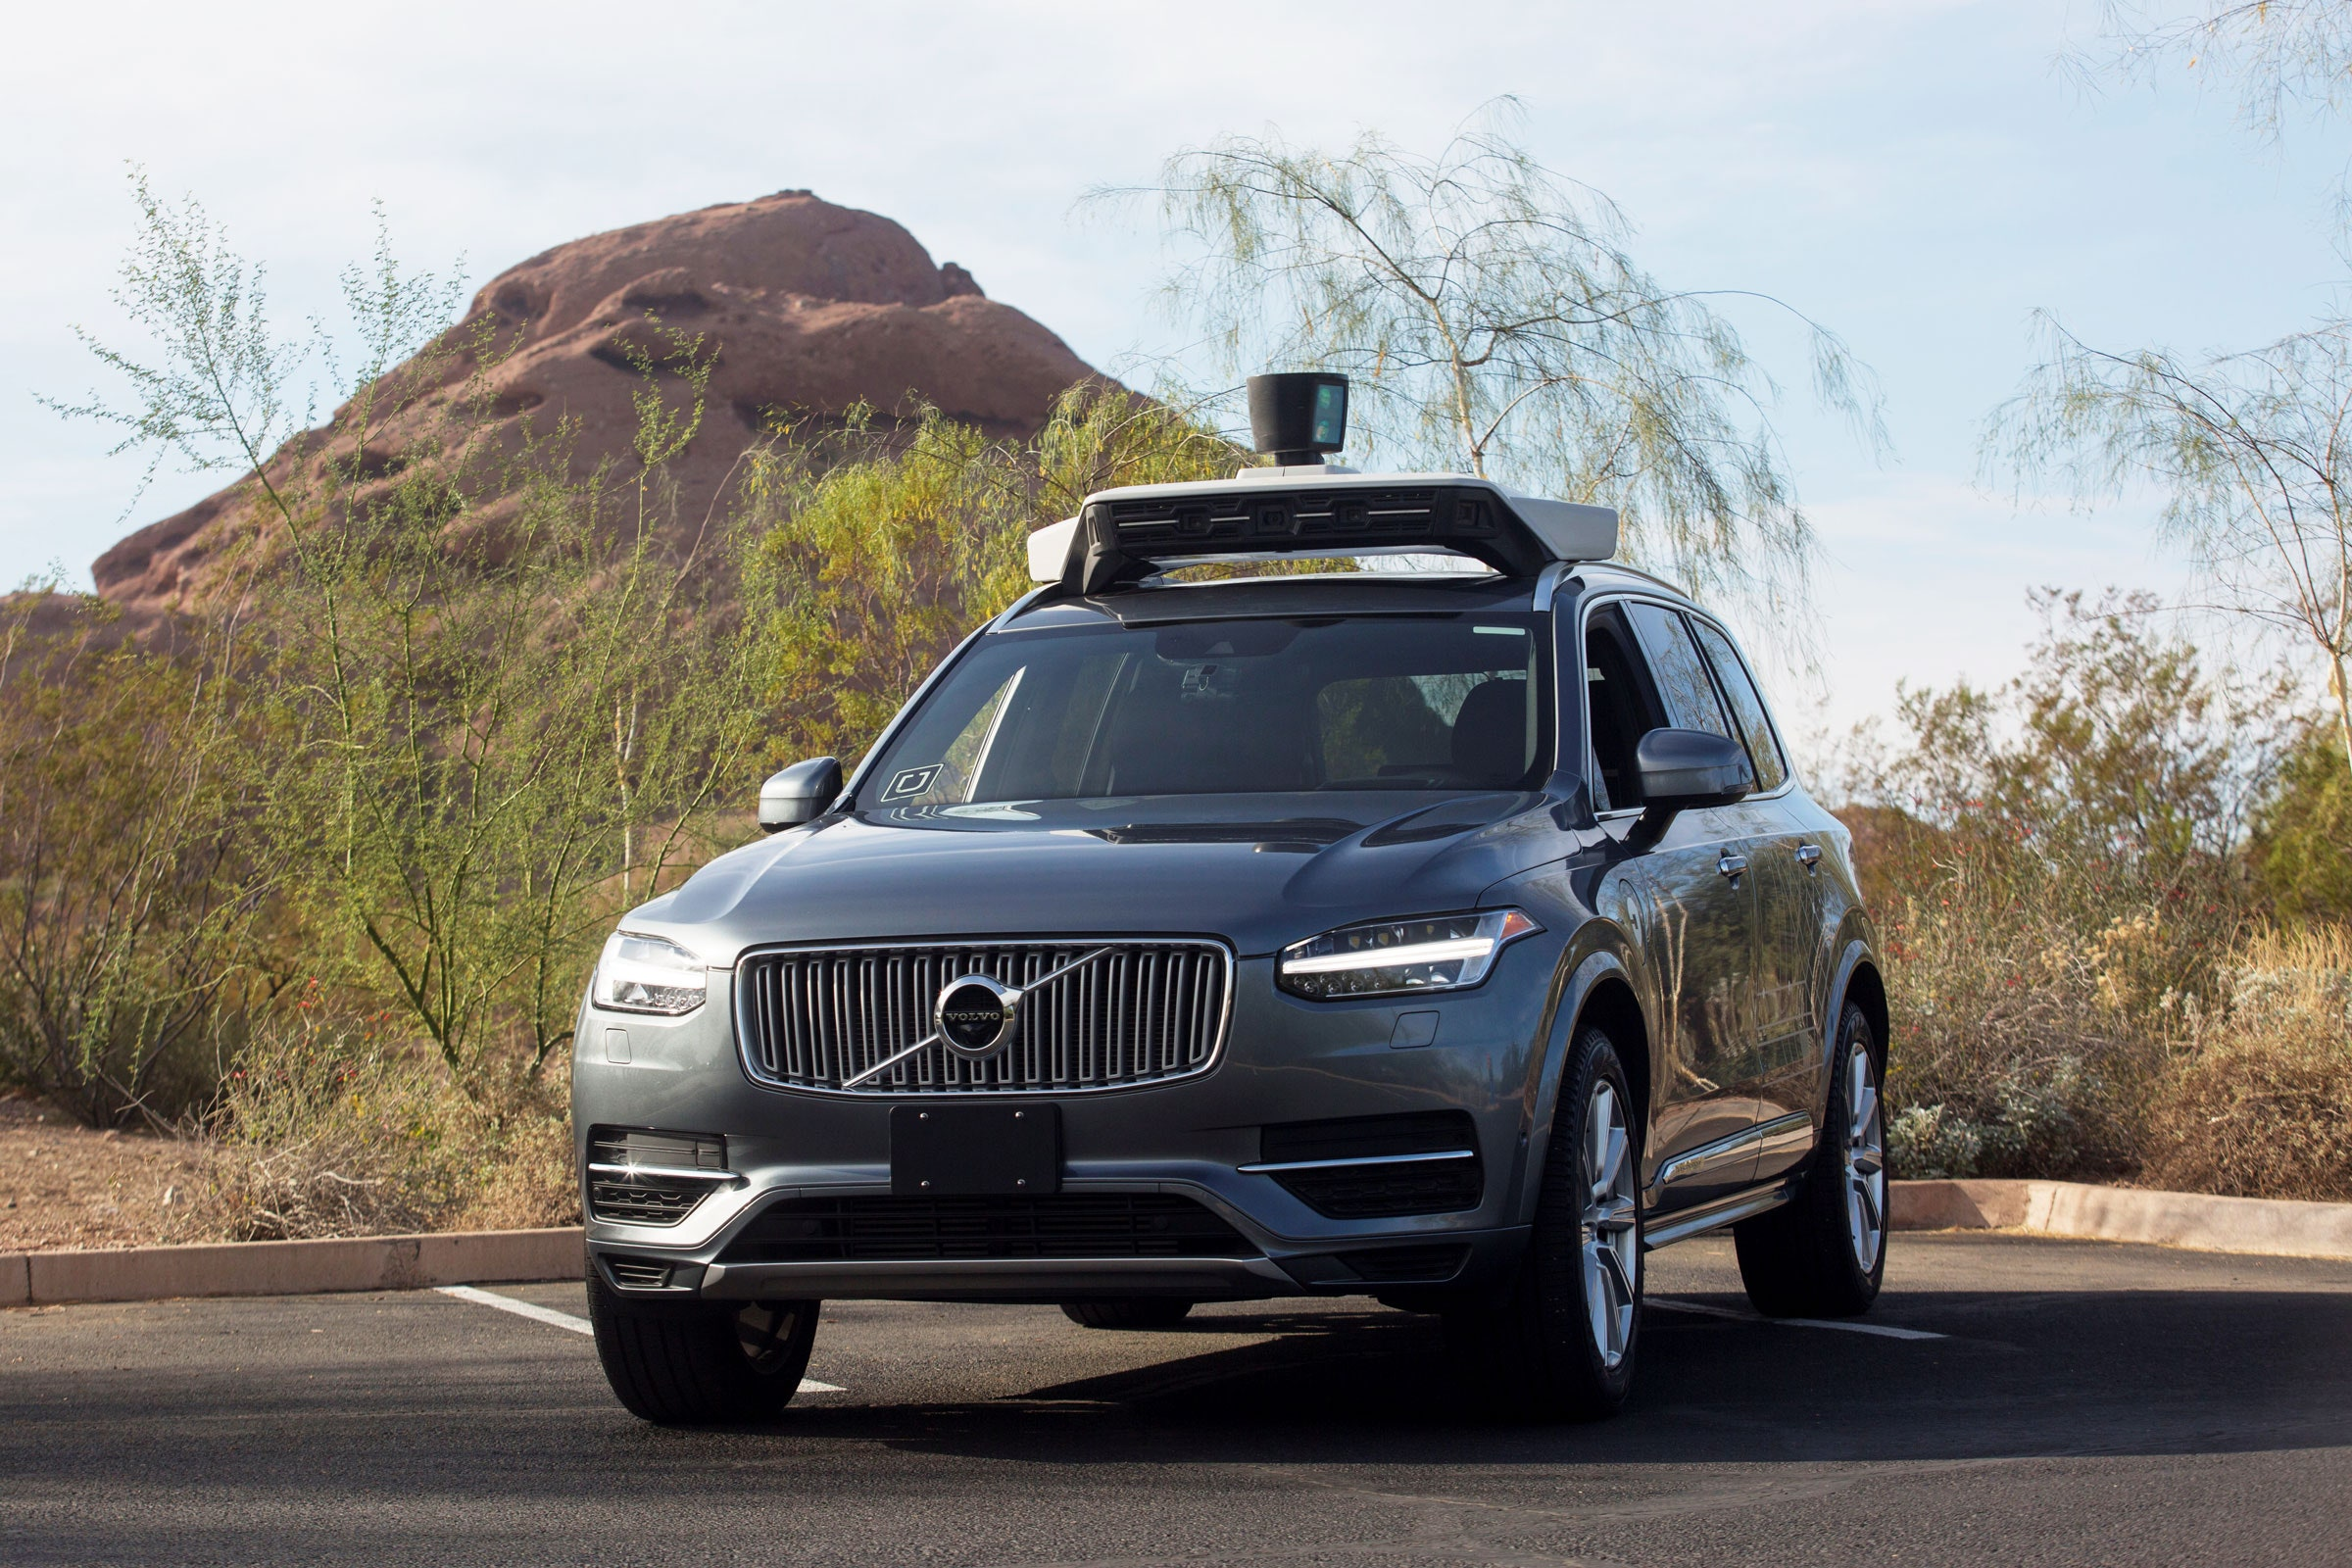 Why Wasn't Uber Charged in a Fatal Self-Driving Car Crash?